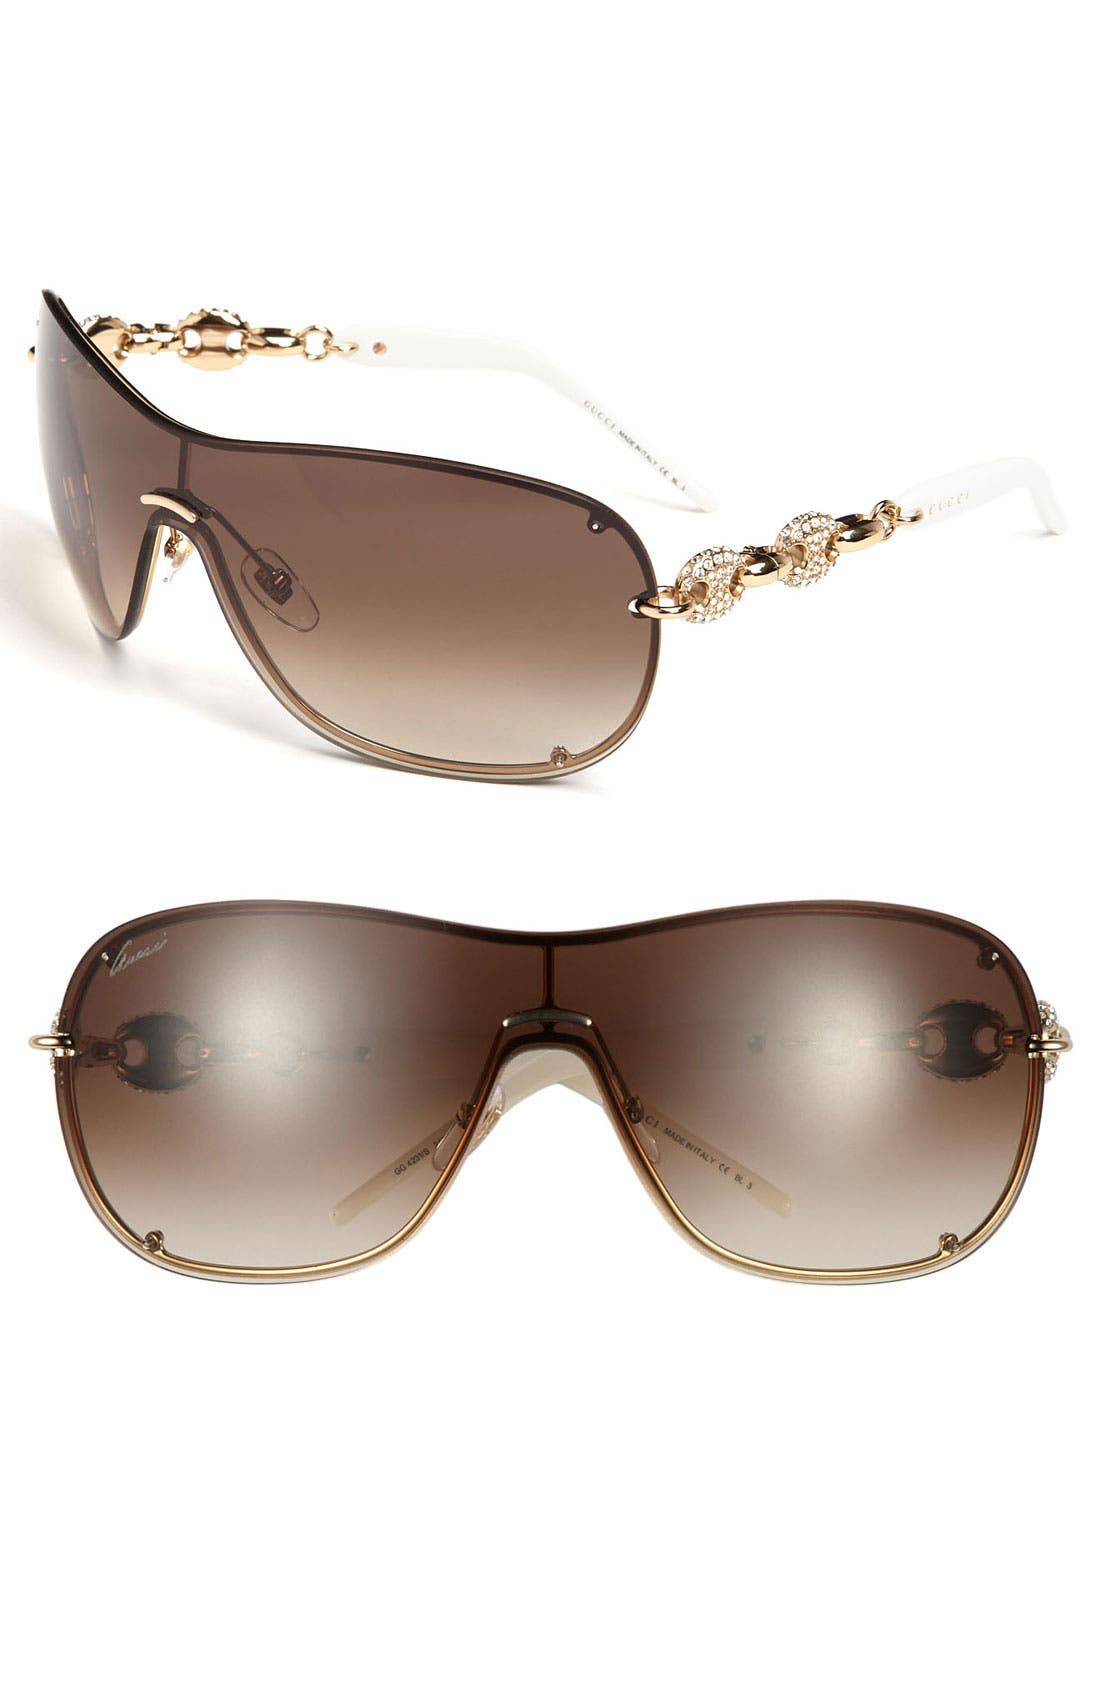 Alternate Image 1 Selected - Gucci 99mm Rimless Shield Sunglasses